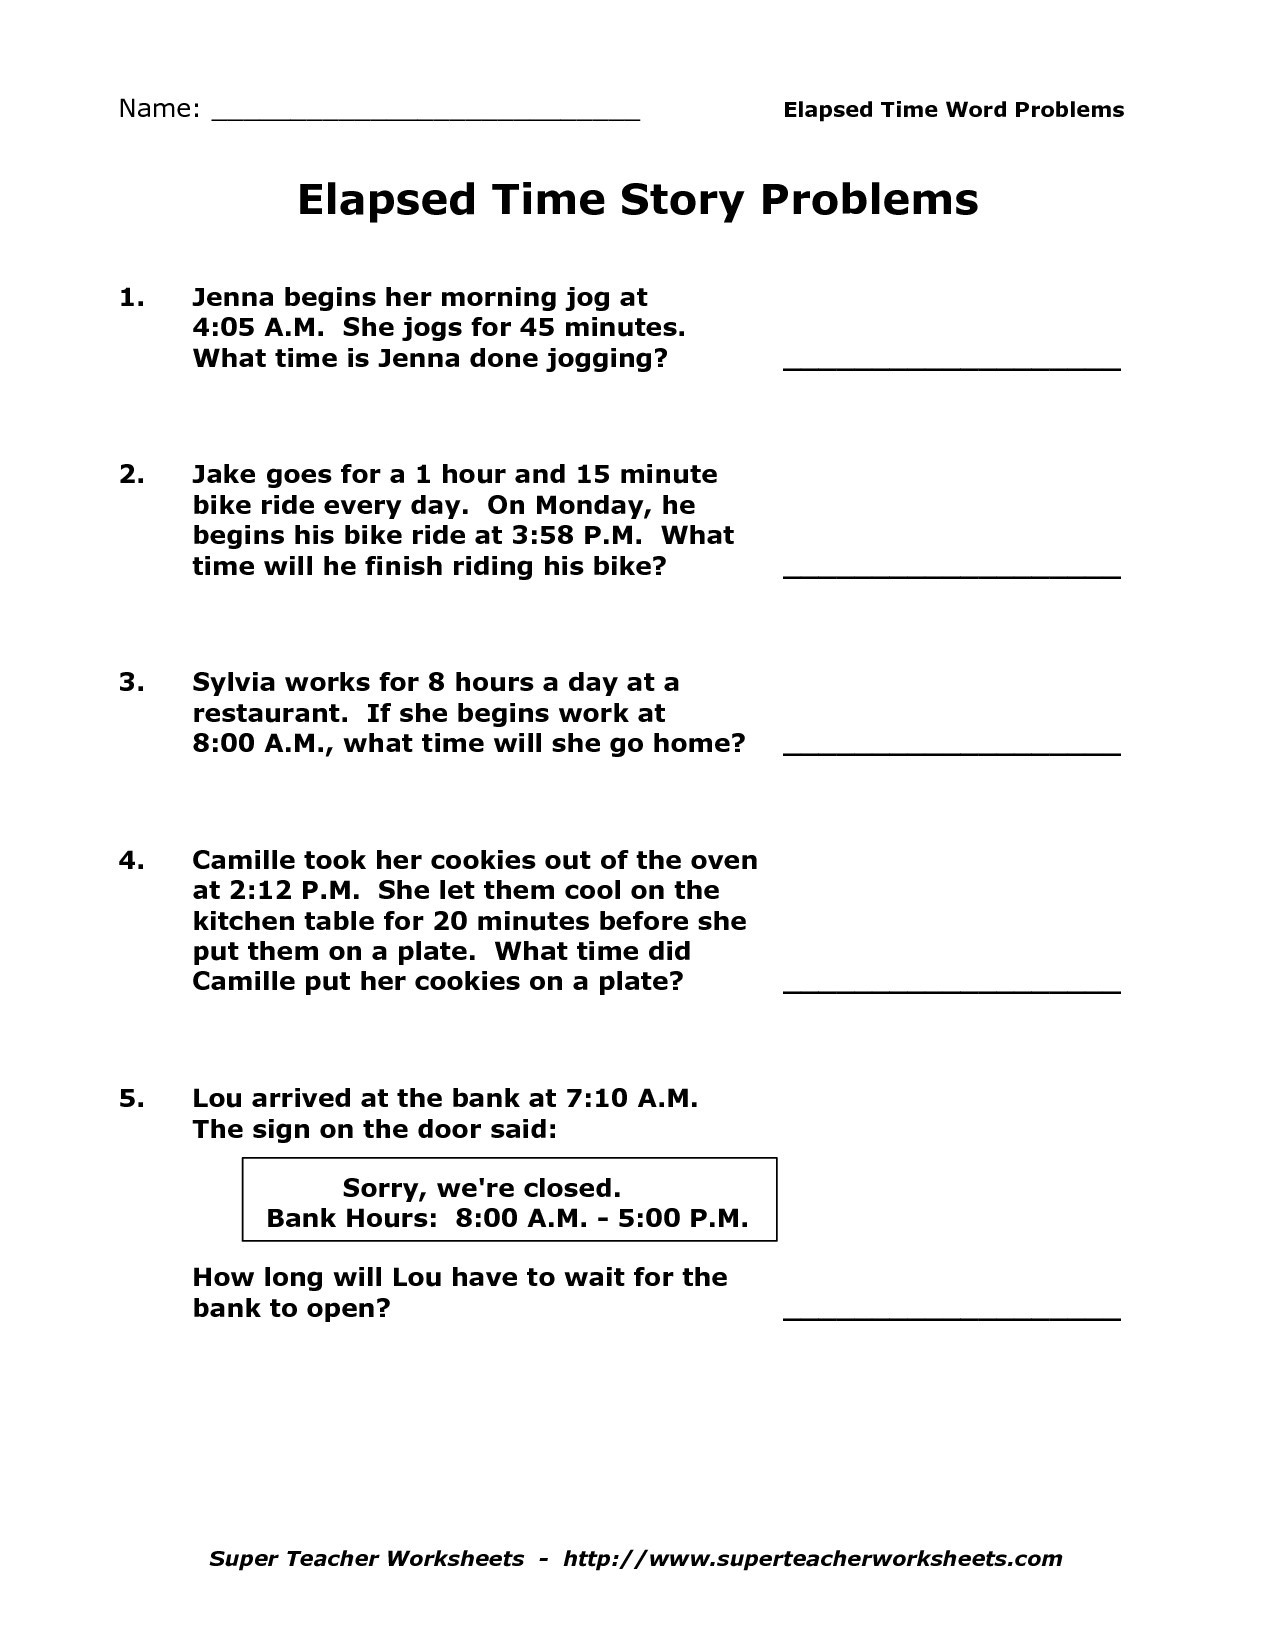 Elapsed Time Worksheets 3Rd Grade To Learning - Math Worksheet For | Free Printable Elapsed Time Worksheets For Grade 3